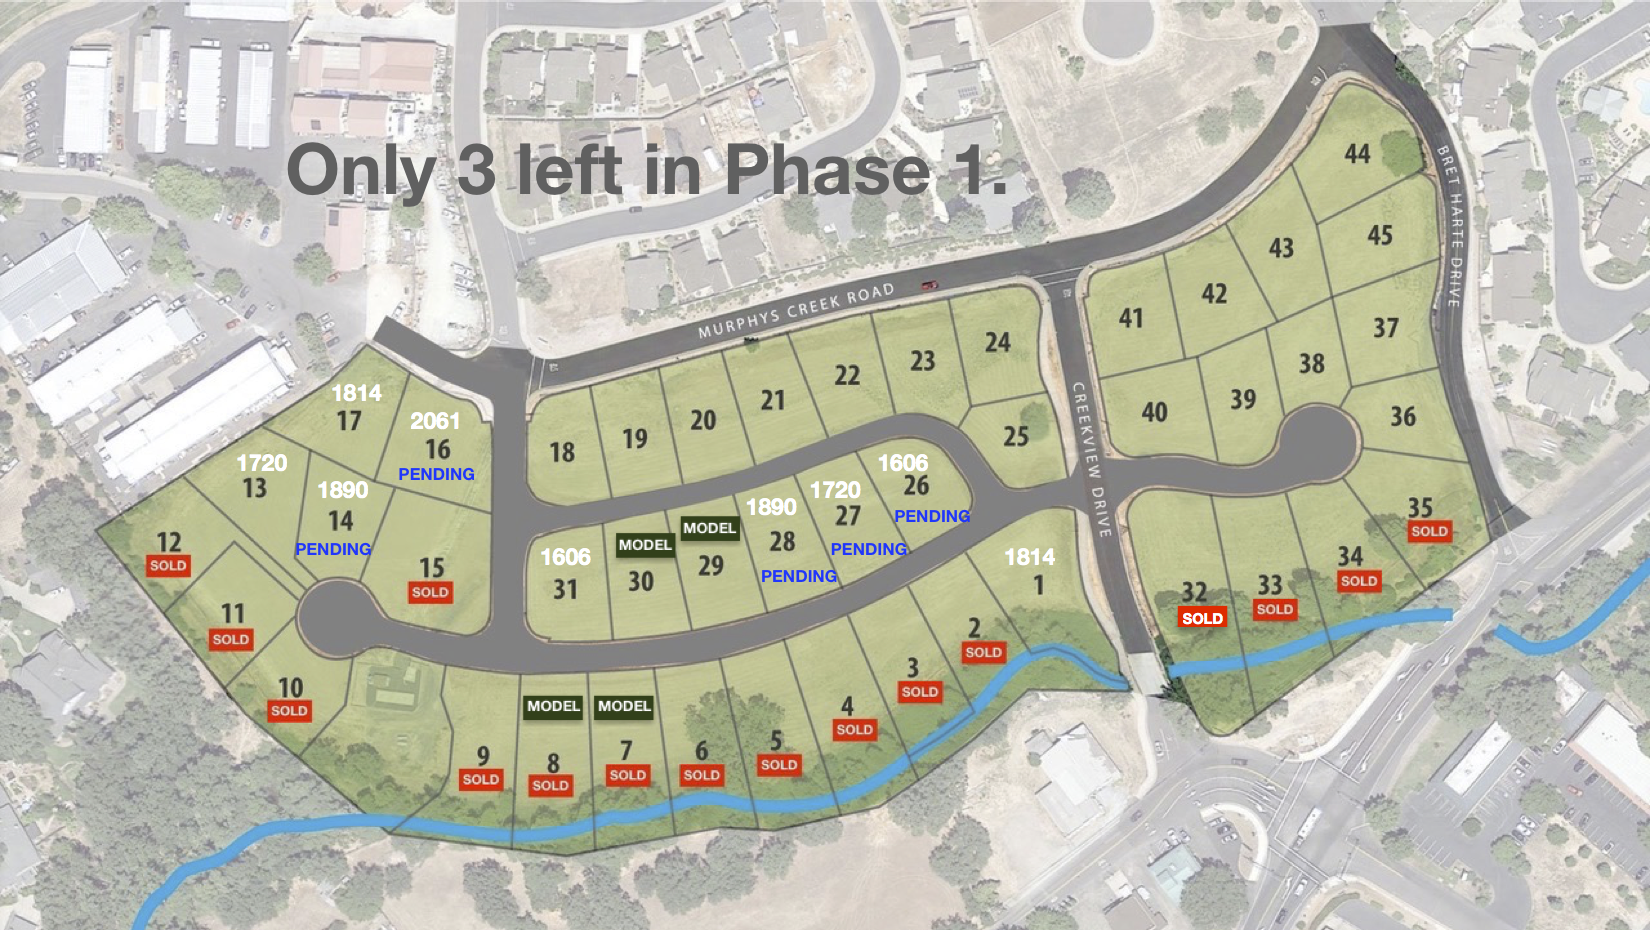 Lot-map phase1 - 3 left